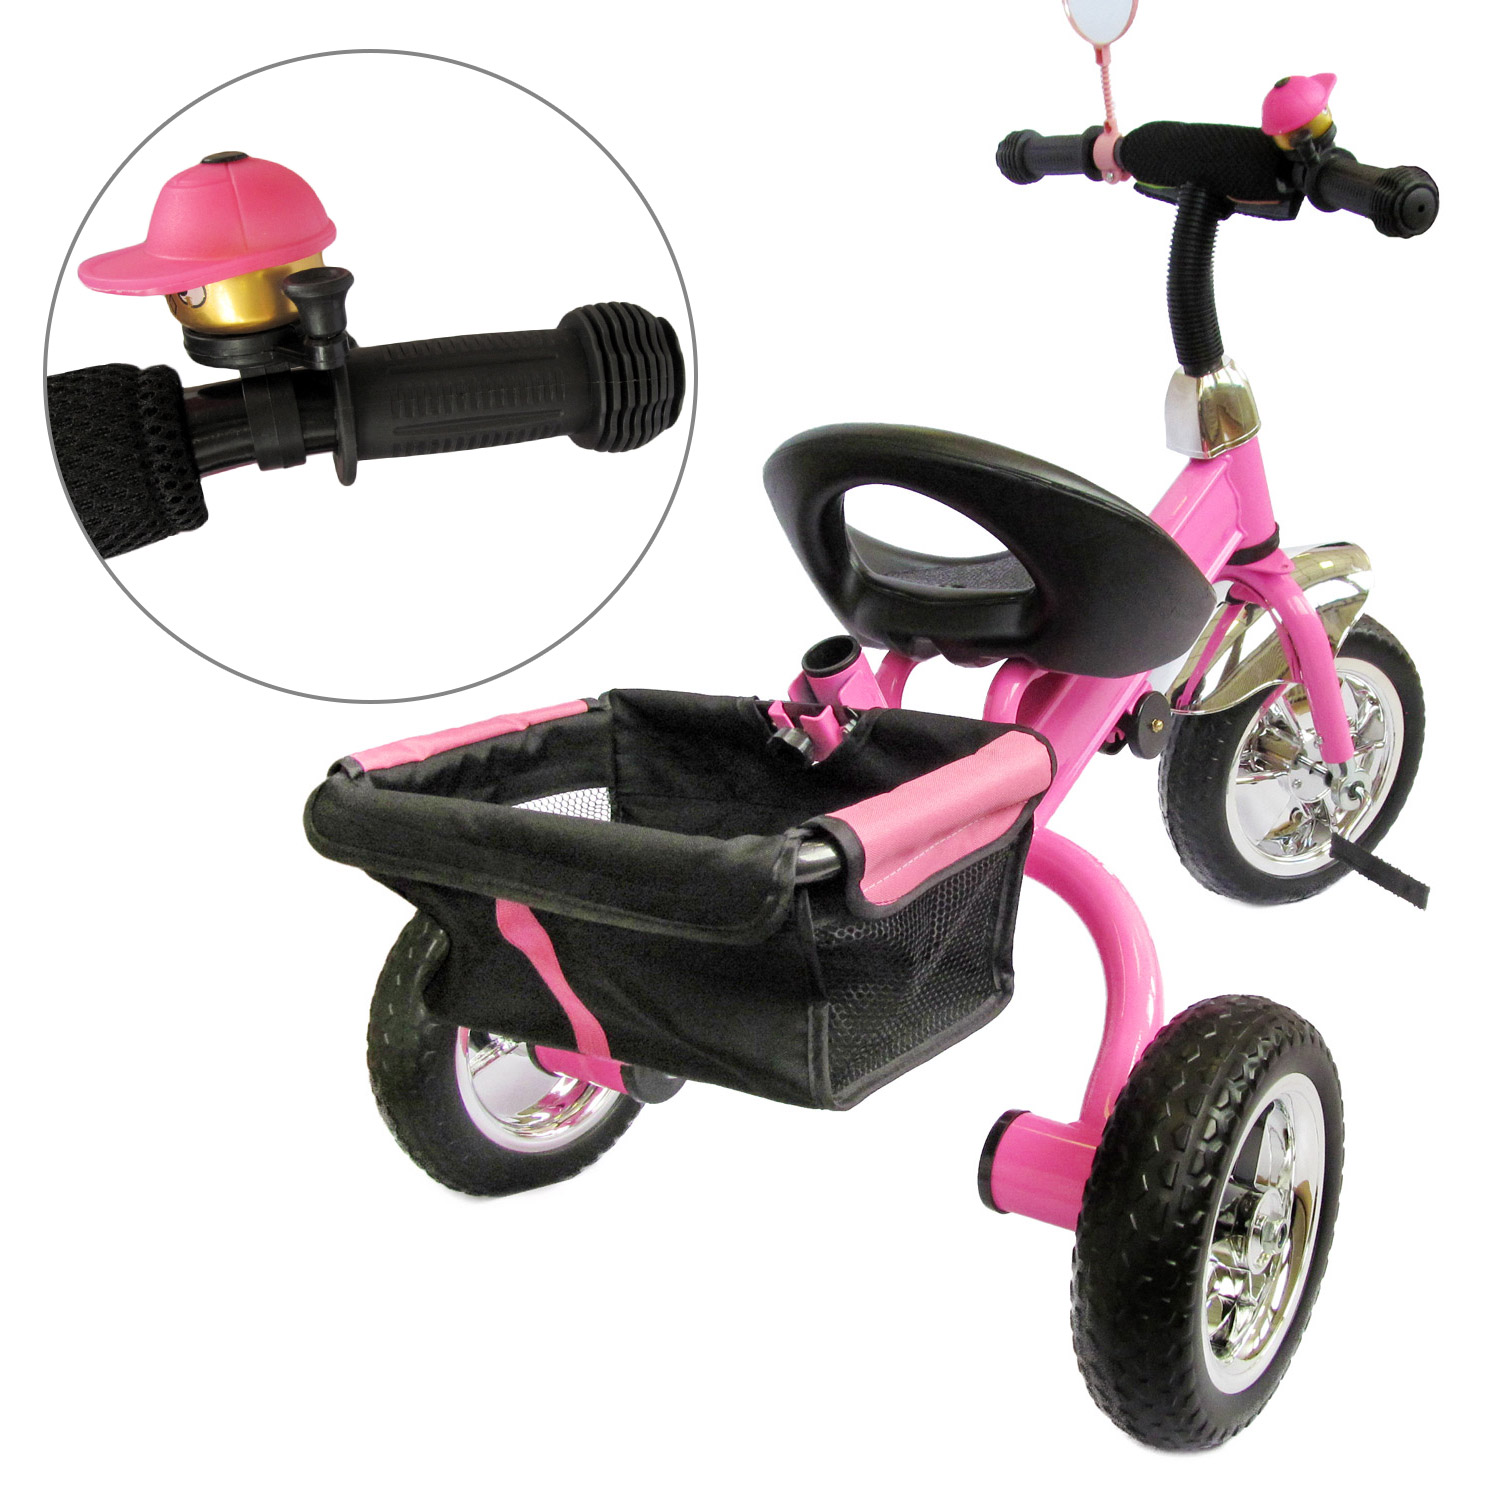 dreirad kinder servolenkung lenkstange kinderdreirad f r 2 5 jahre fahrrad pink ebay. Black Bedroom Furniture Sets. Home Design Ideas